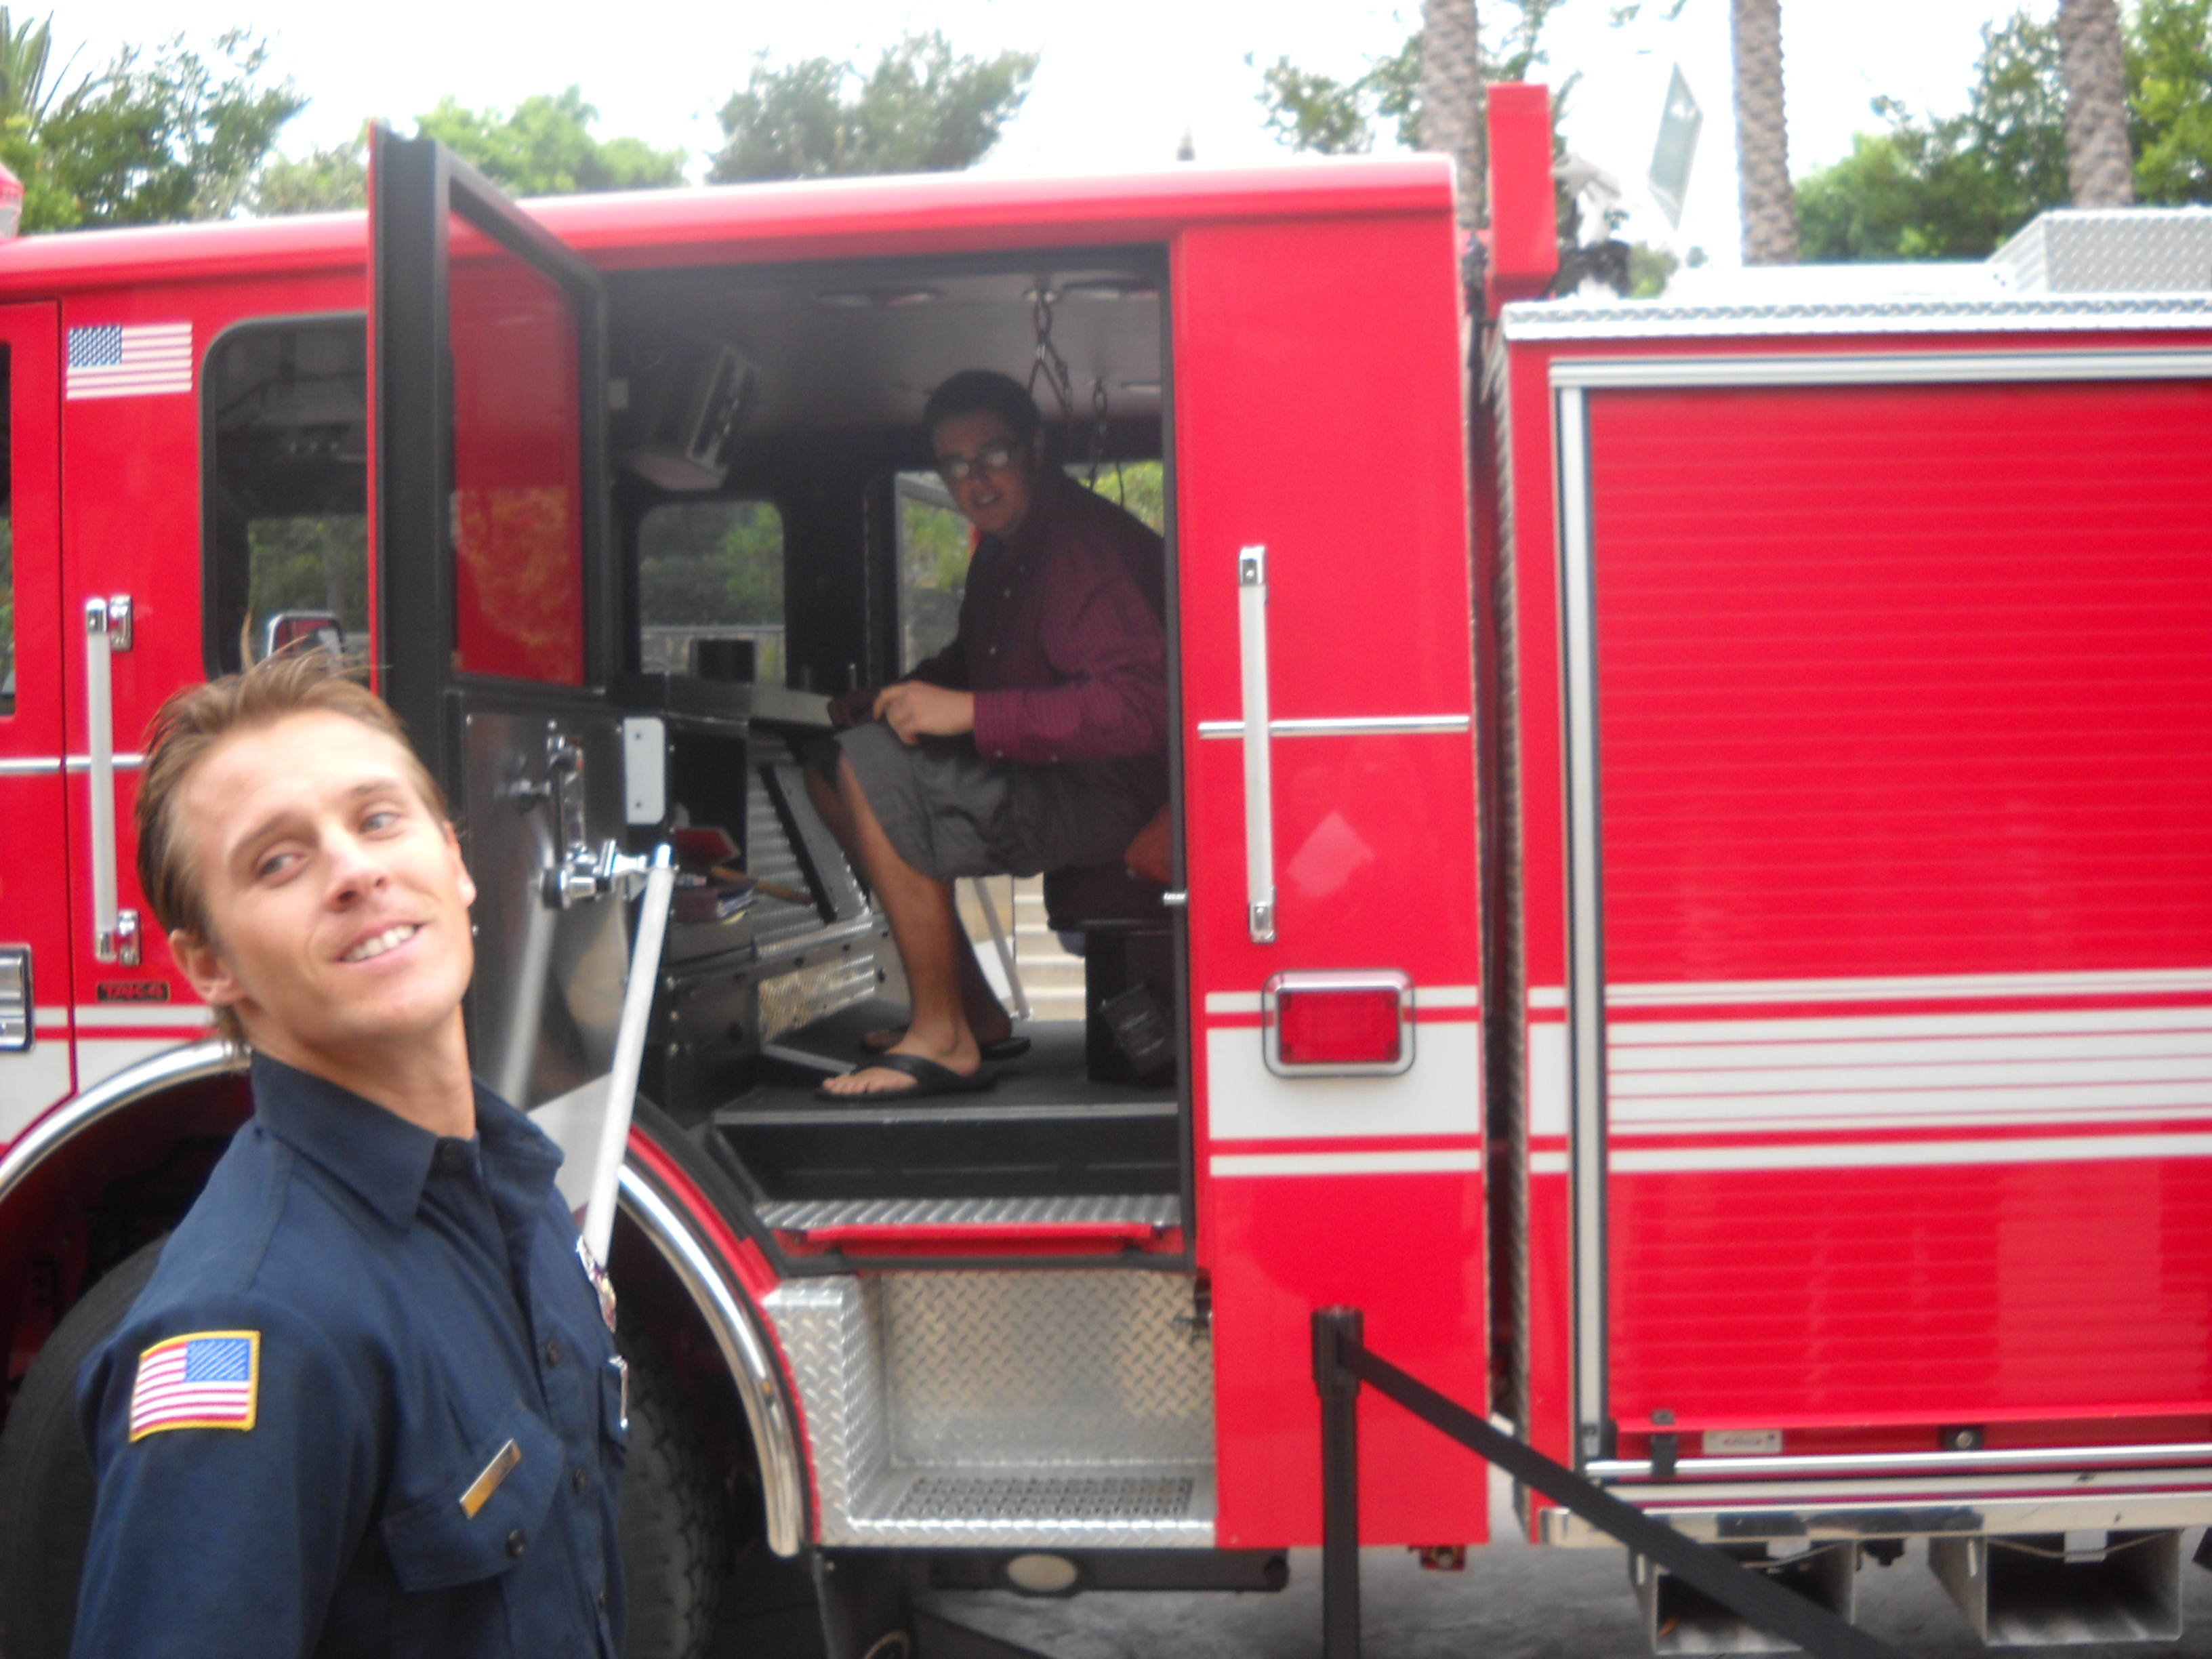 Fire Truck visits the Rock Church parking lot for some holy photo ops!